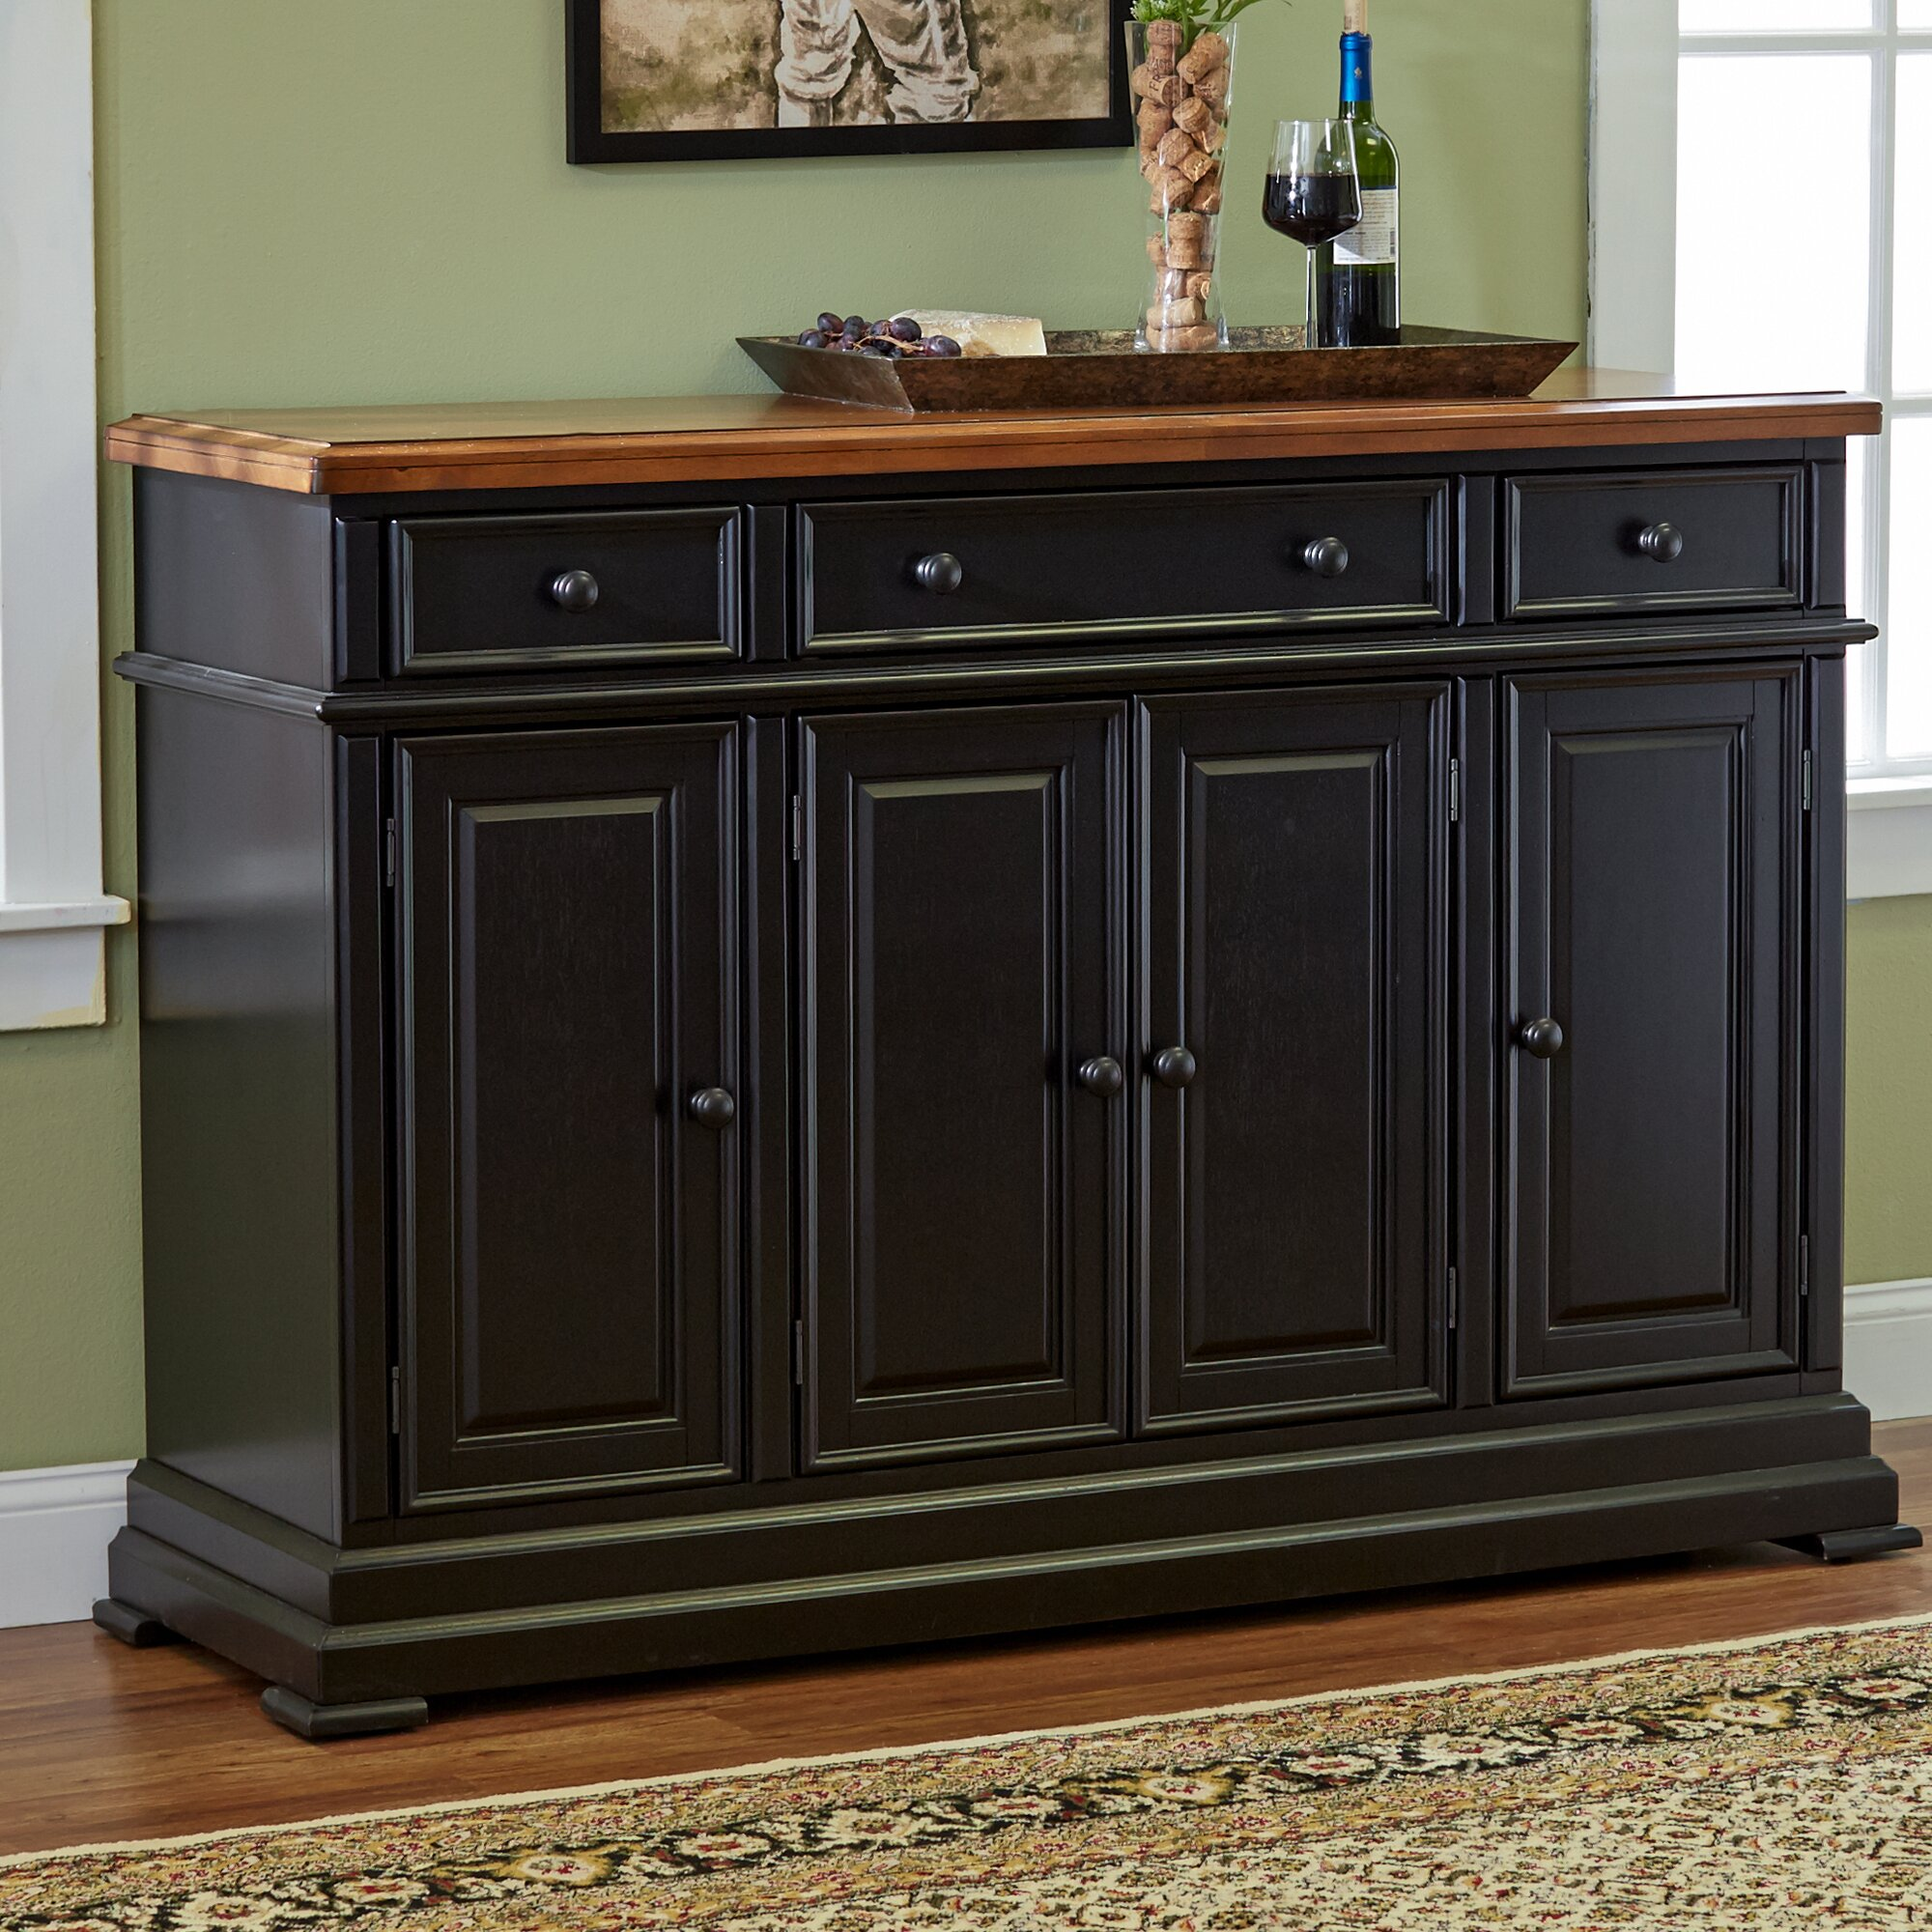 courtdale sideboard - Dining Room Hutch And Buffet